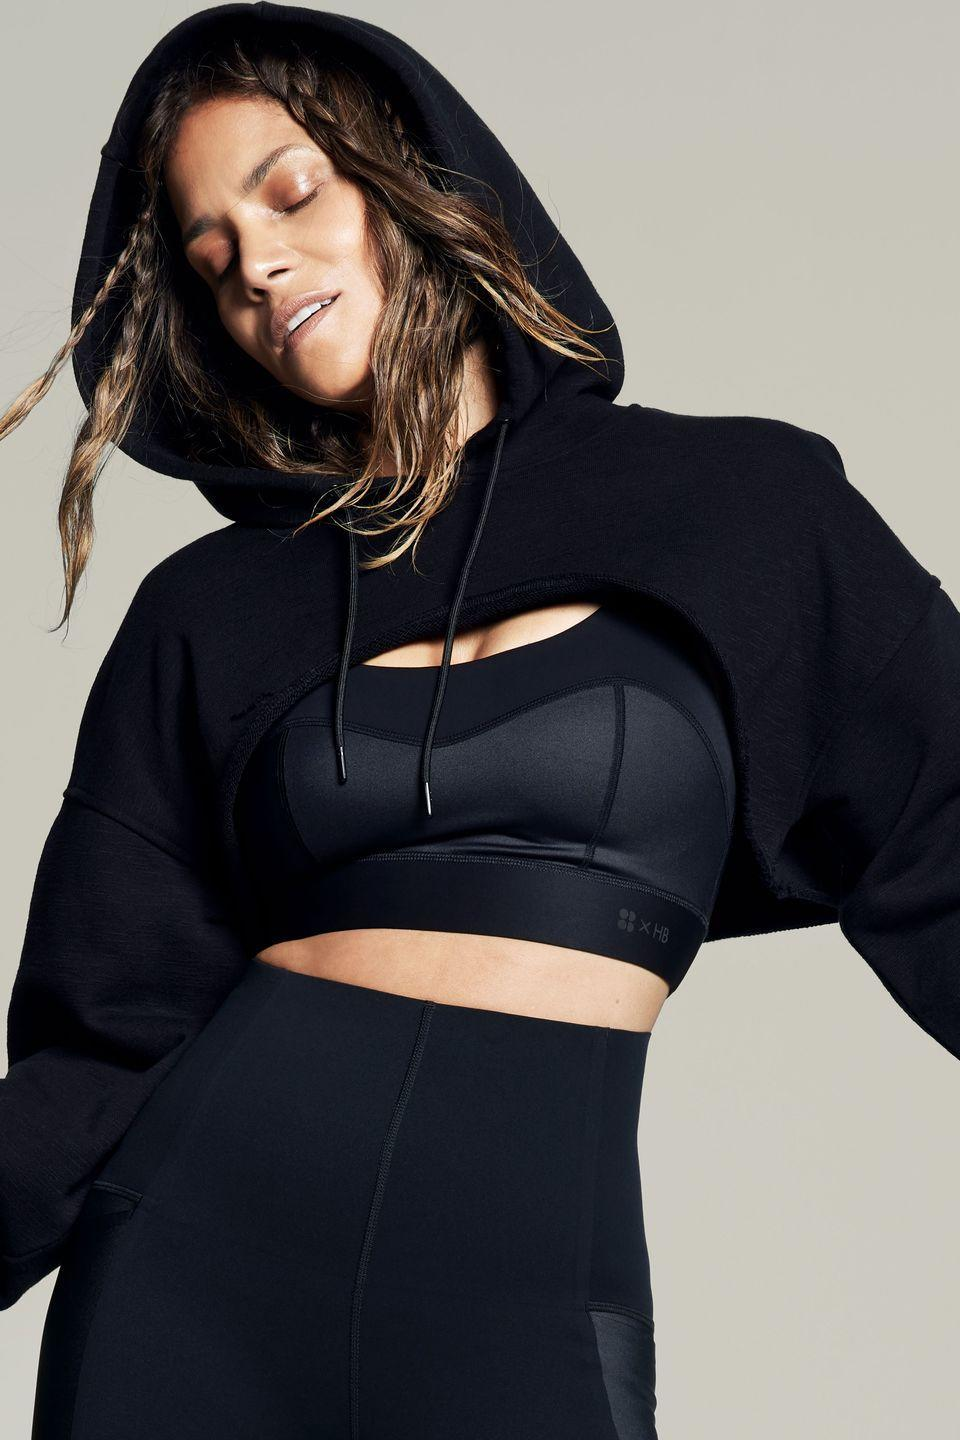 """<p>A sleek all-black set that feels a million dollars (just look at Halle's face. It says it all.) Made from premium technical materials this is about as luxe as sportswear gets.</p><p><strong>How much? </strong>Bra, £60, leggings, £75</p><p><a class=""""link rapid-noclick-resp"""" href=""""https://go.redirectingat.com?id=127X1599956&url=https%3A%2F%2Fwww.sweatybetty.com%2Fhalle-berry%2Fhalle-berry-edit%2Fstorm-power-shine-workout-bra-SB6905_Black.html&sref=https%3A%2F%2Fwww.prima.co.uk%2Ffashion-and-beauty%2Ffashion-tips%2Fg36471272%2Fsweaty-betty-halle-berry%2F"""" rel=""""nofollow noopener"""" target=""""_blank"""" data-ylk=""""slk:SHOP NOW"""">SHOP NOW</a></p>"""